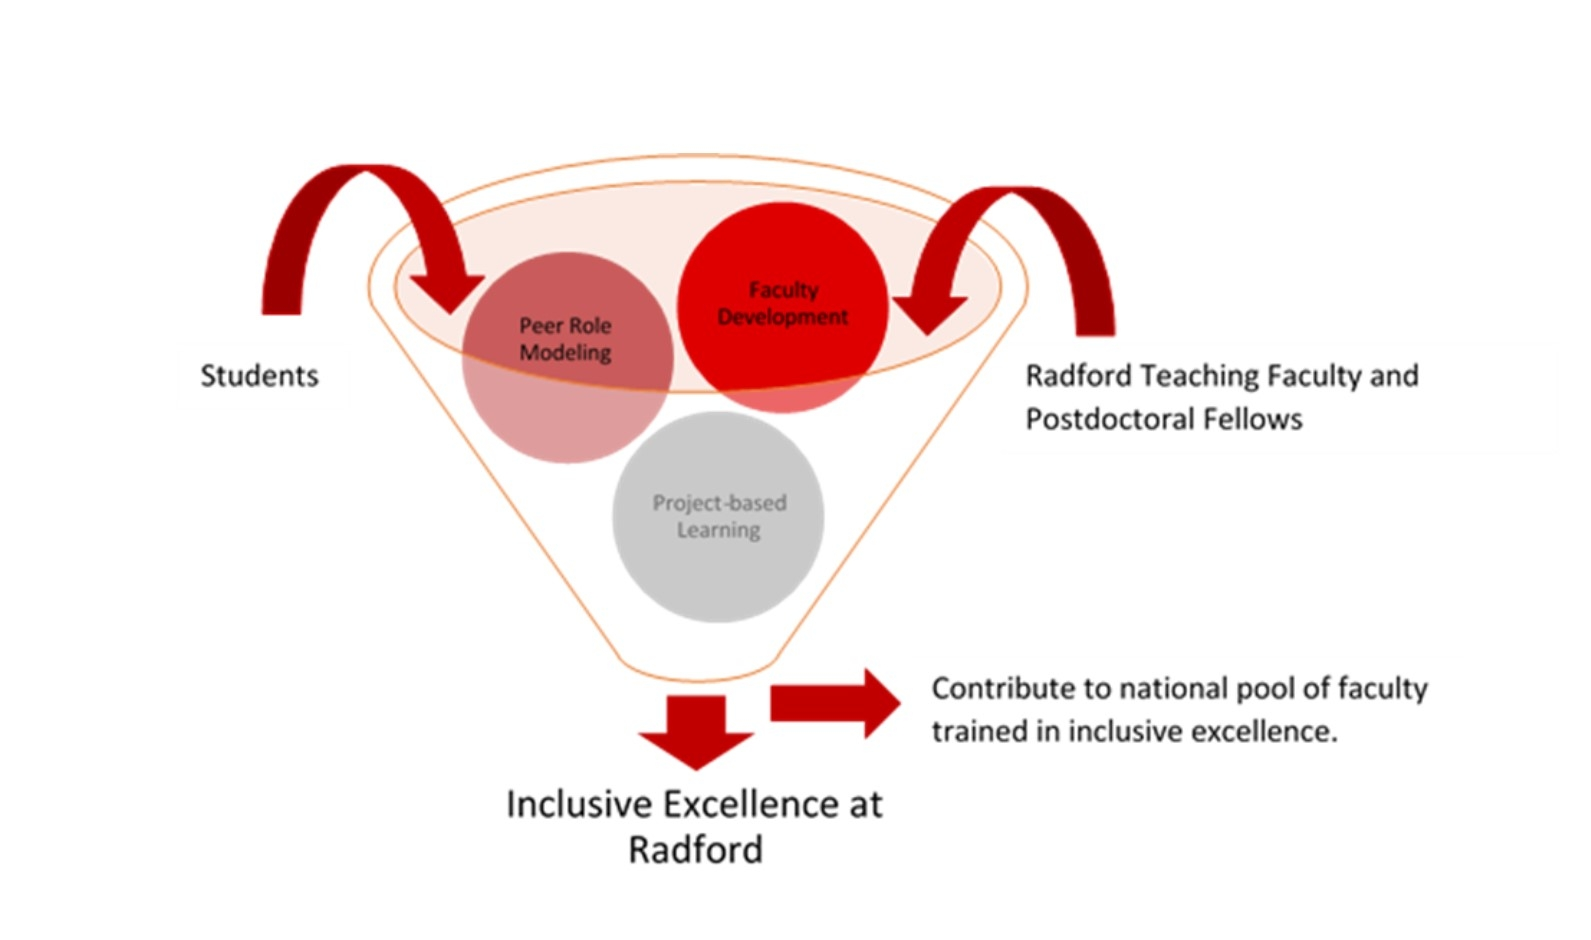 REALISE teaching graphic for inclusive excellence.  The graphic shows students, faculty development, Radford Teaching Faculty and Postdoctoral Fellows, and project based learning all going into a funnel.  Coming out of the funnel is Inclusive Excellence and contributing to a national pool of faculty trained in inclusive excellence.